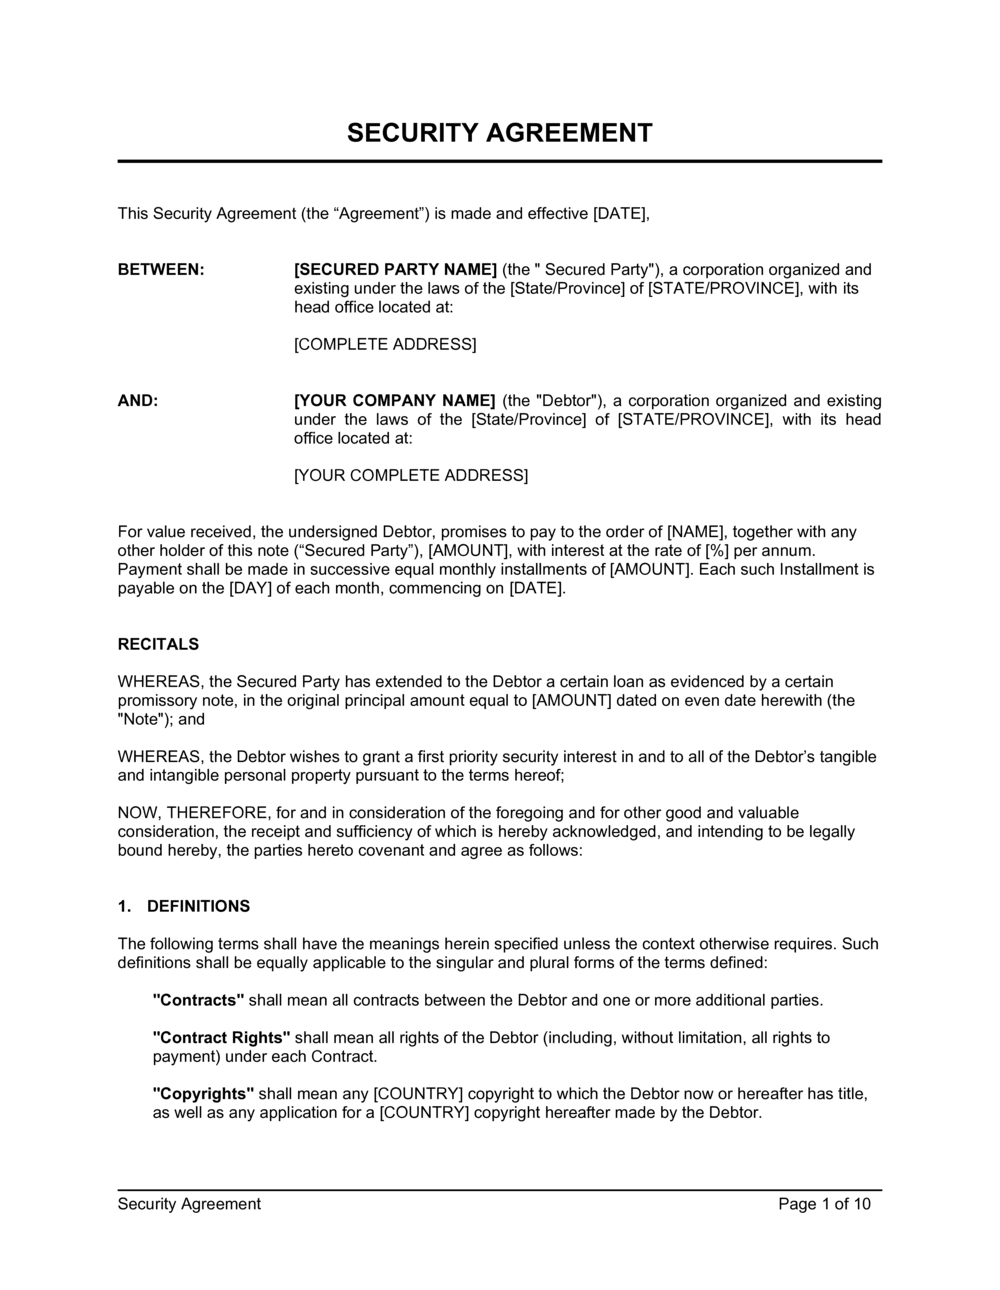 Business-in-a-Box's Security Agreement Template